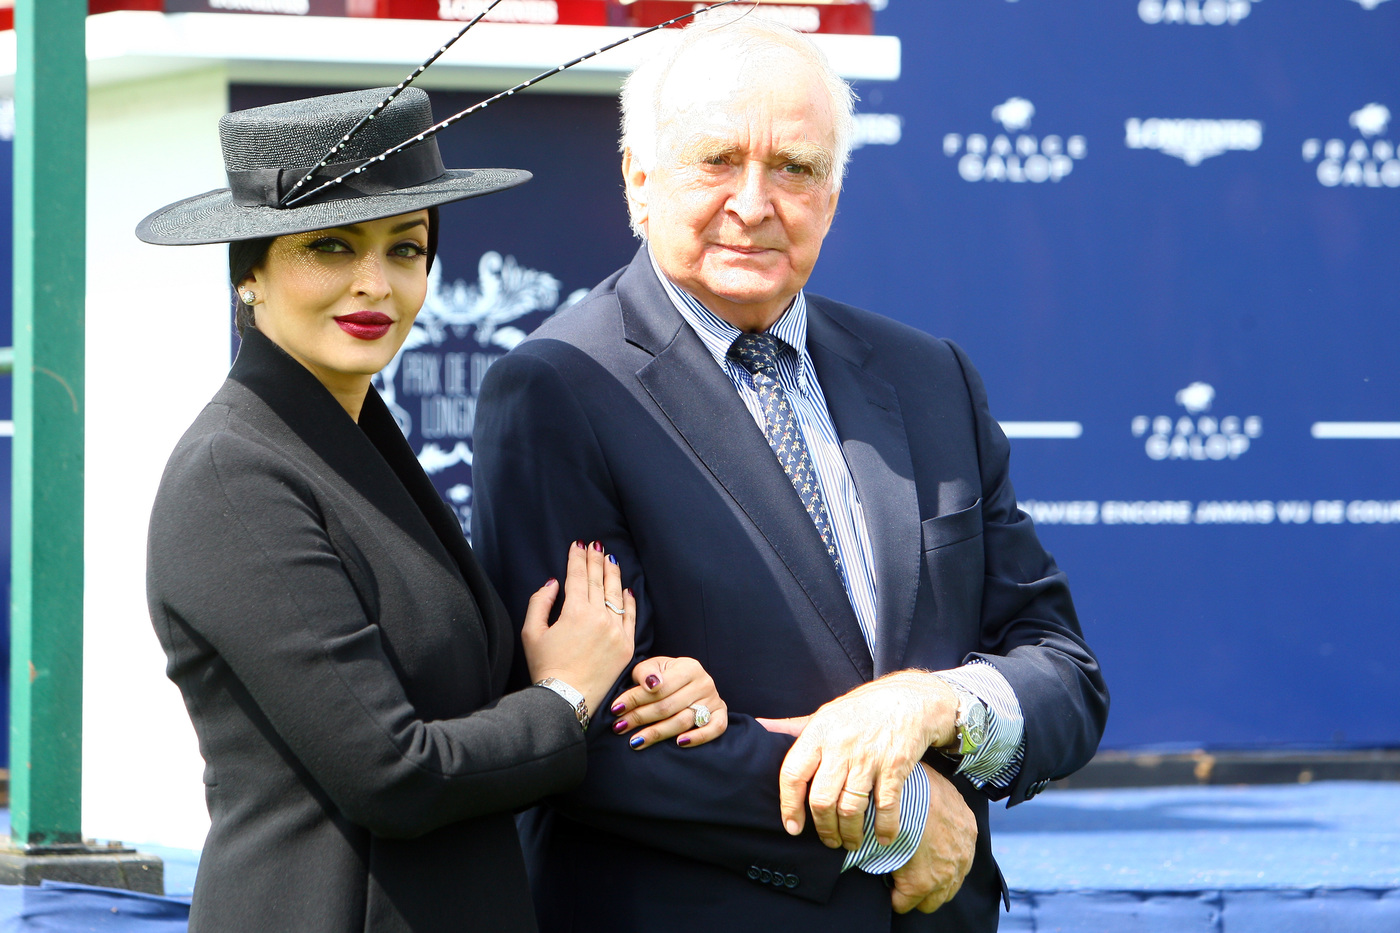 Longines Flat Racing Event: The Prix de Diane Longines – 45'000 spectators, 9 races, 1 Queen of Elegance and 1 King of the Prix de Diane Longines 10